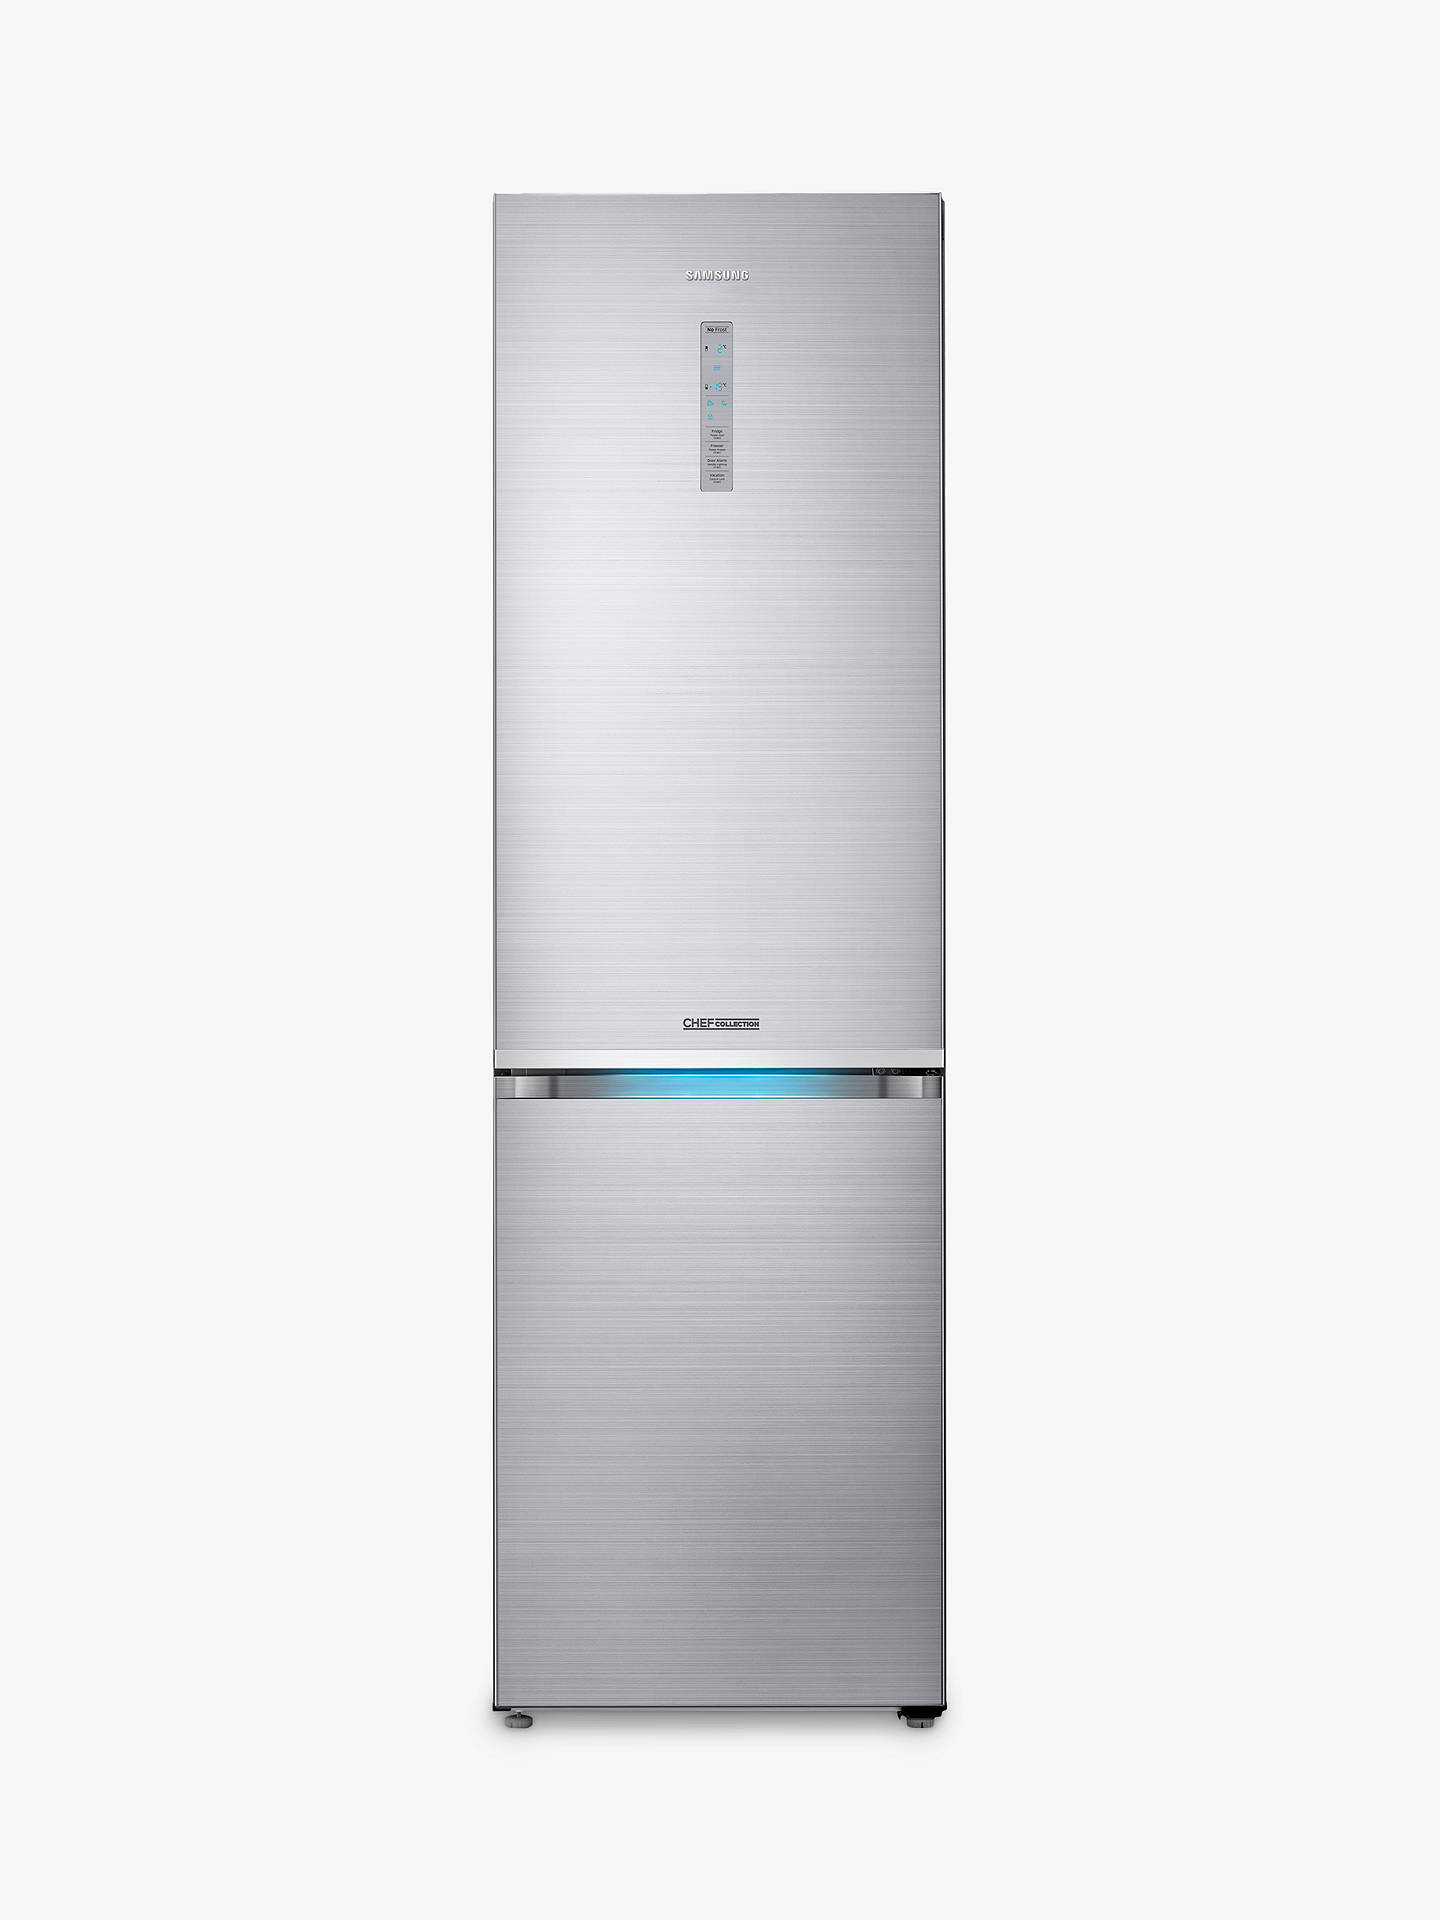 Buy Samsung RB41J7859S4 Chef Collection Freestanding Fridge-Freezer, A+++ Energy Rating, 60cm Wide, Stainless Steel Online at johnlewis.com